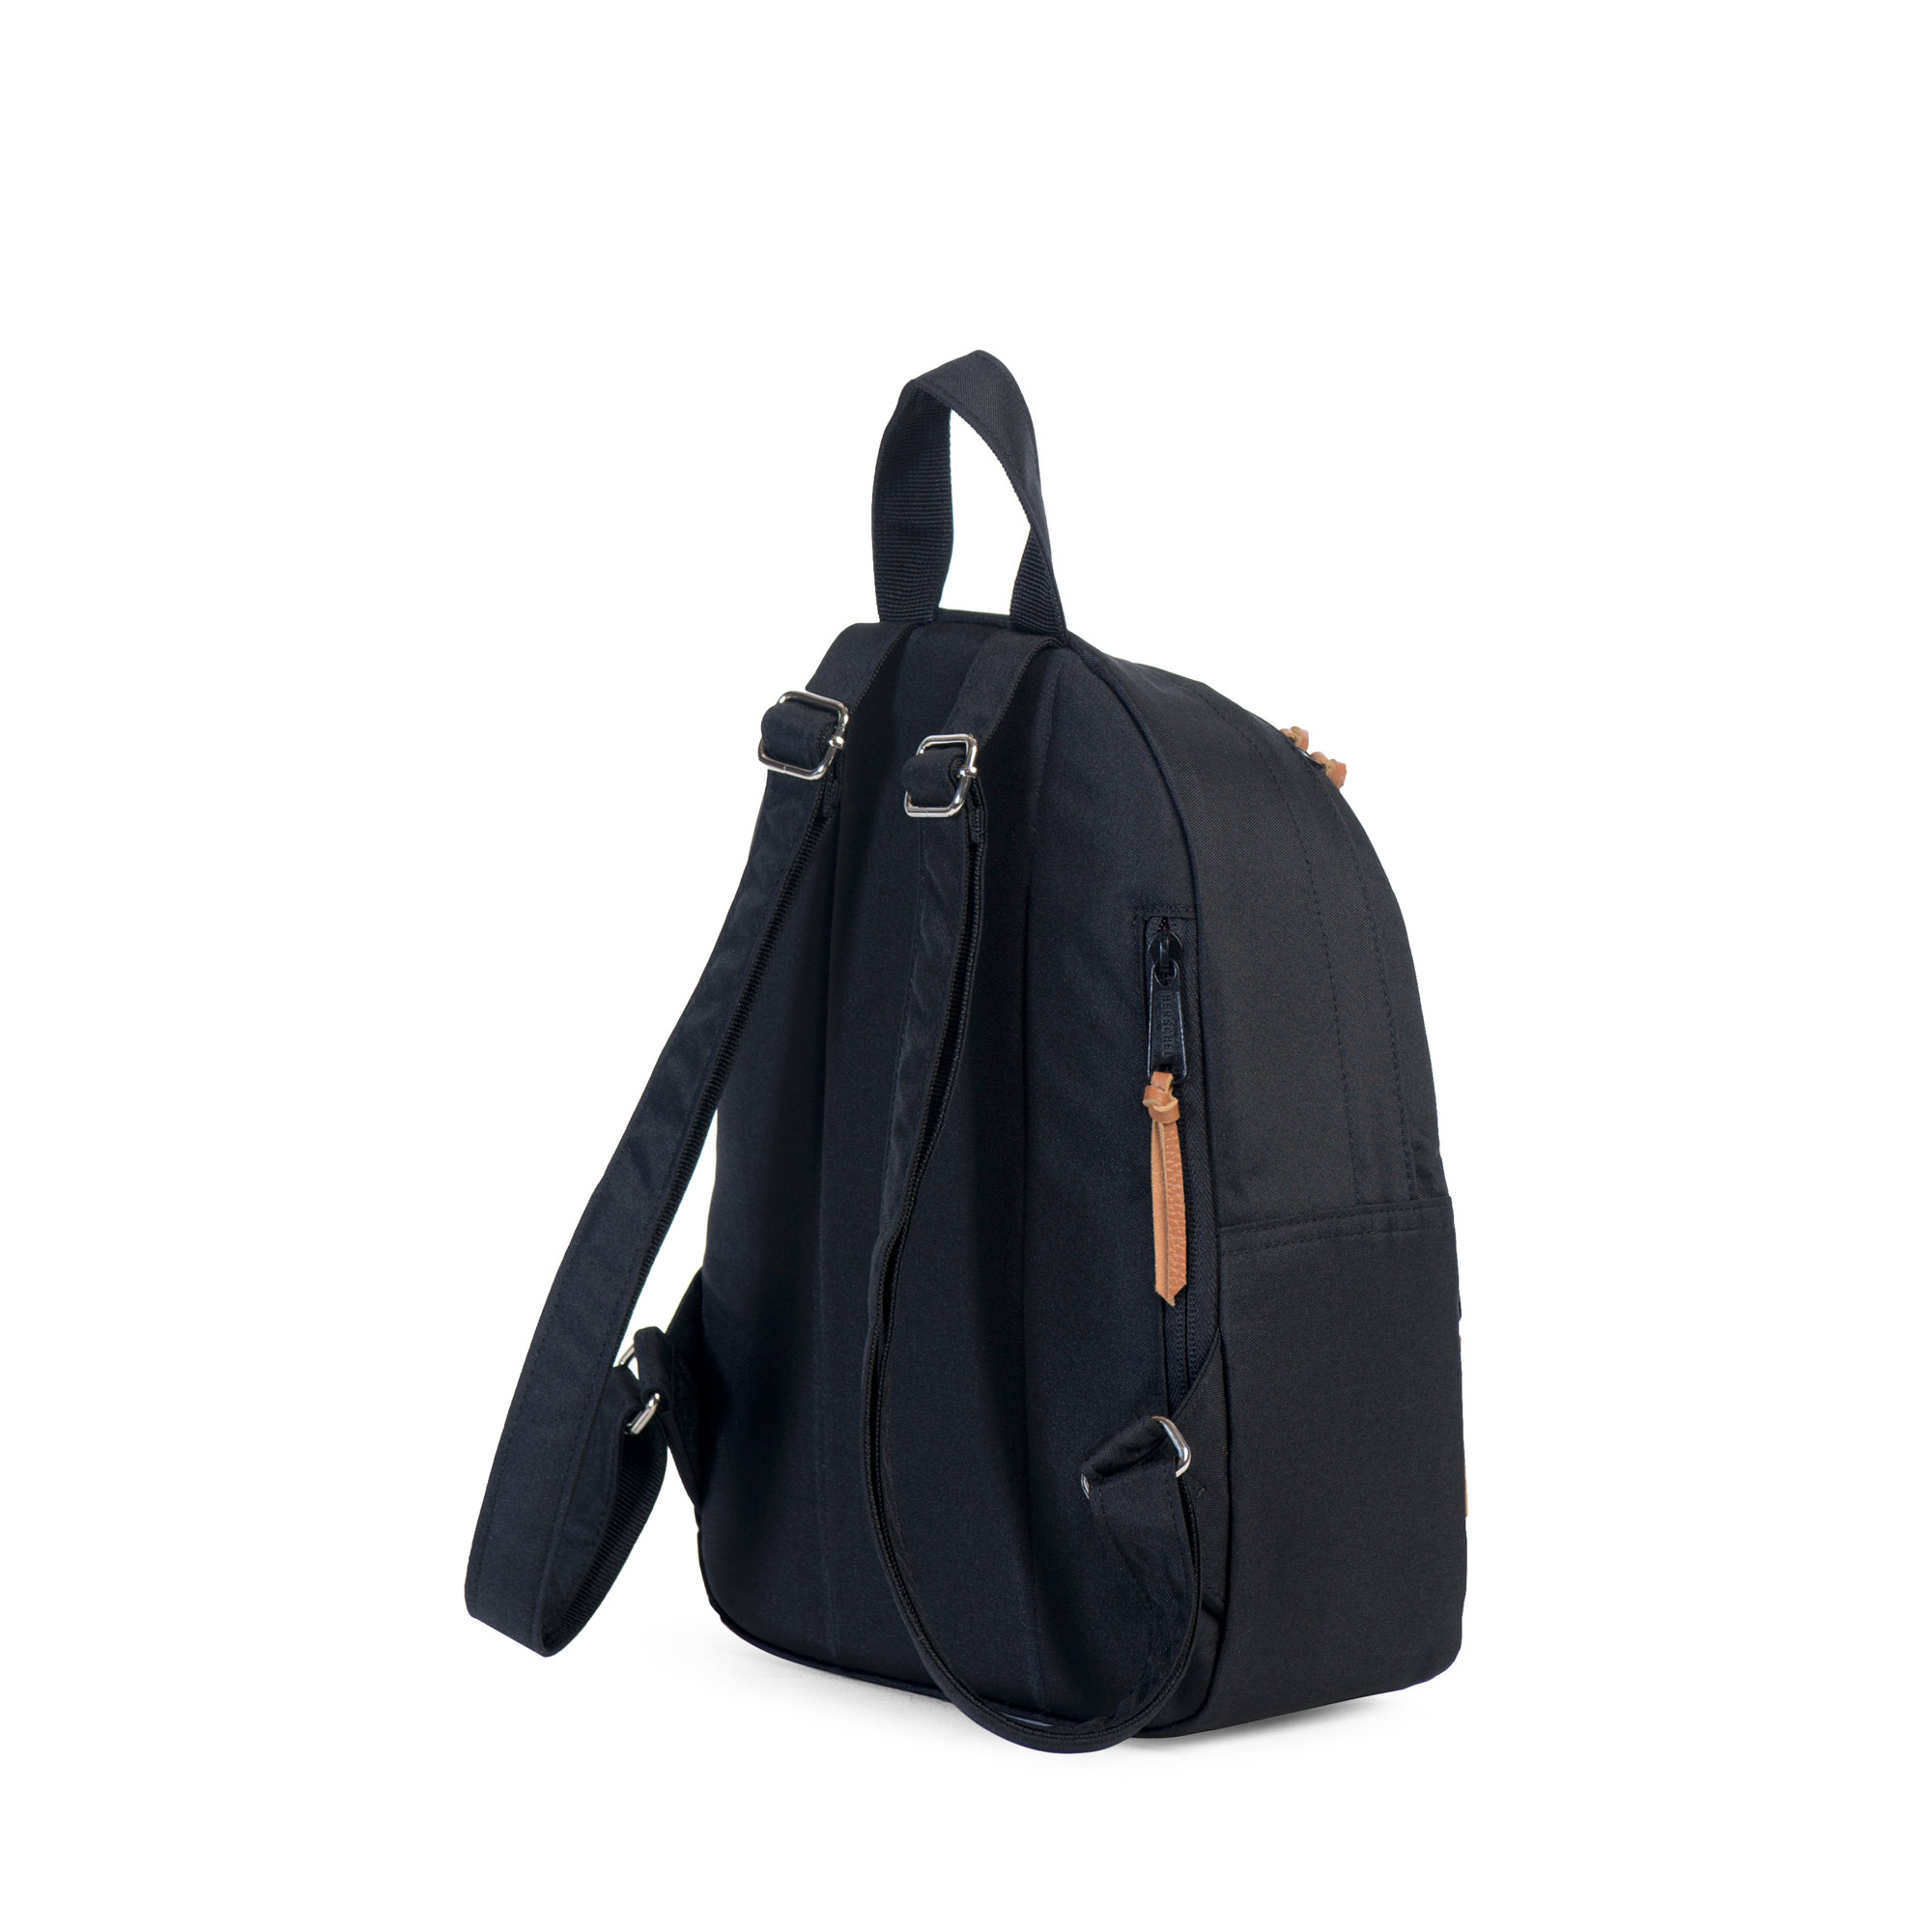 c352277aa74 Herschel Town X Small Backpack Black Palm- Fenix Toulouse Handball